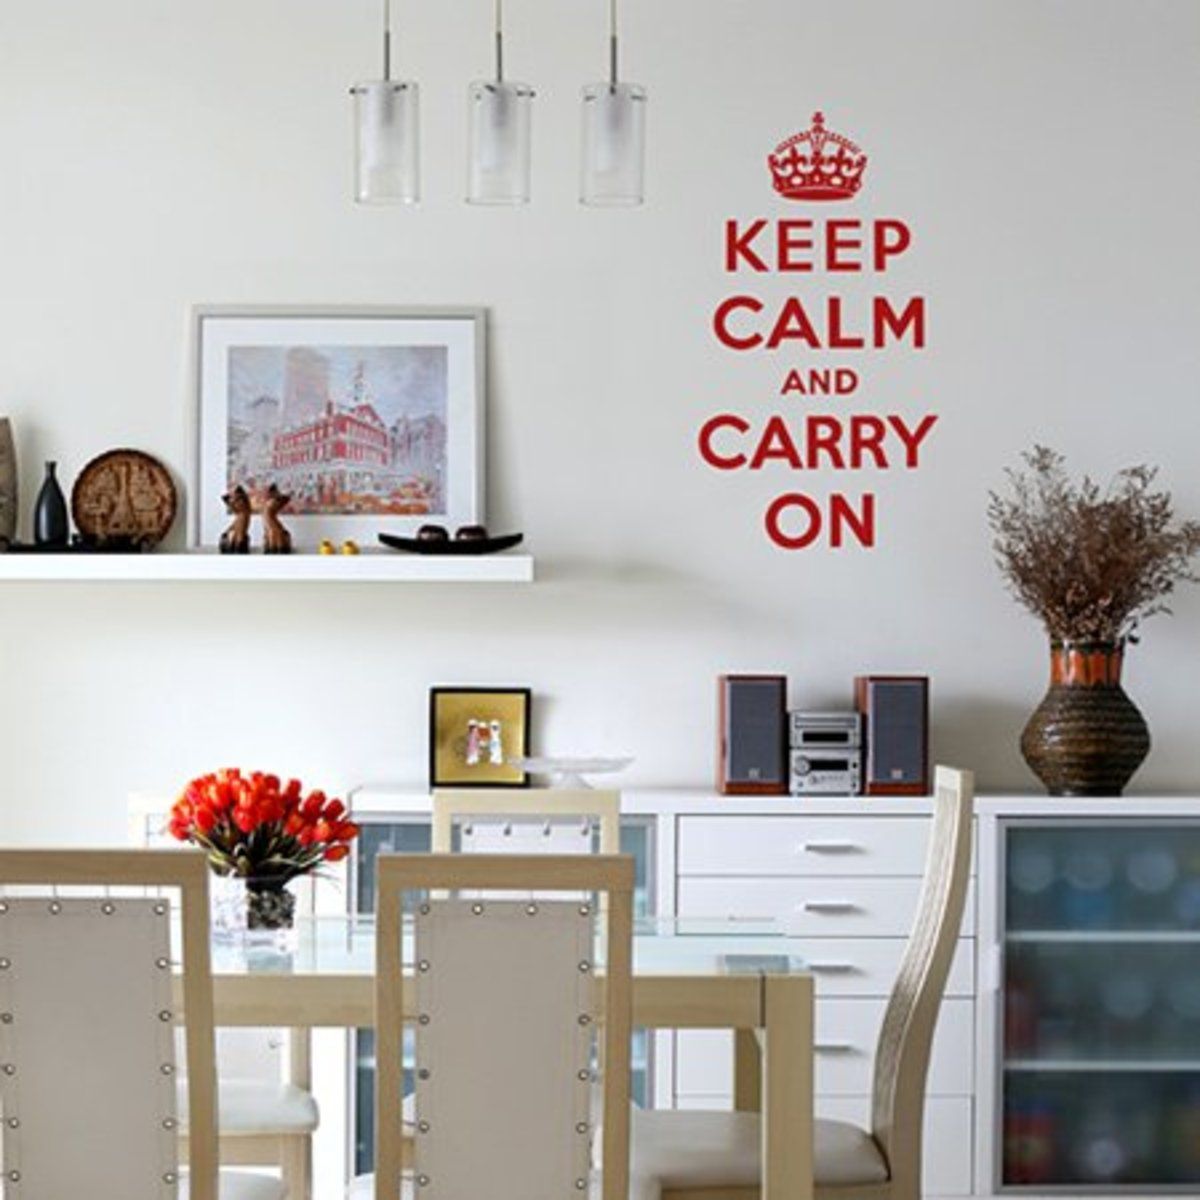 how to remove vinyl wall stickers and decals